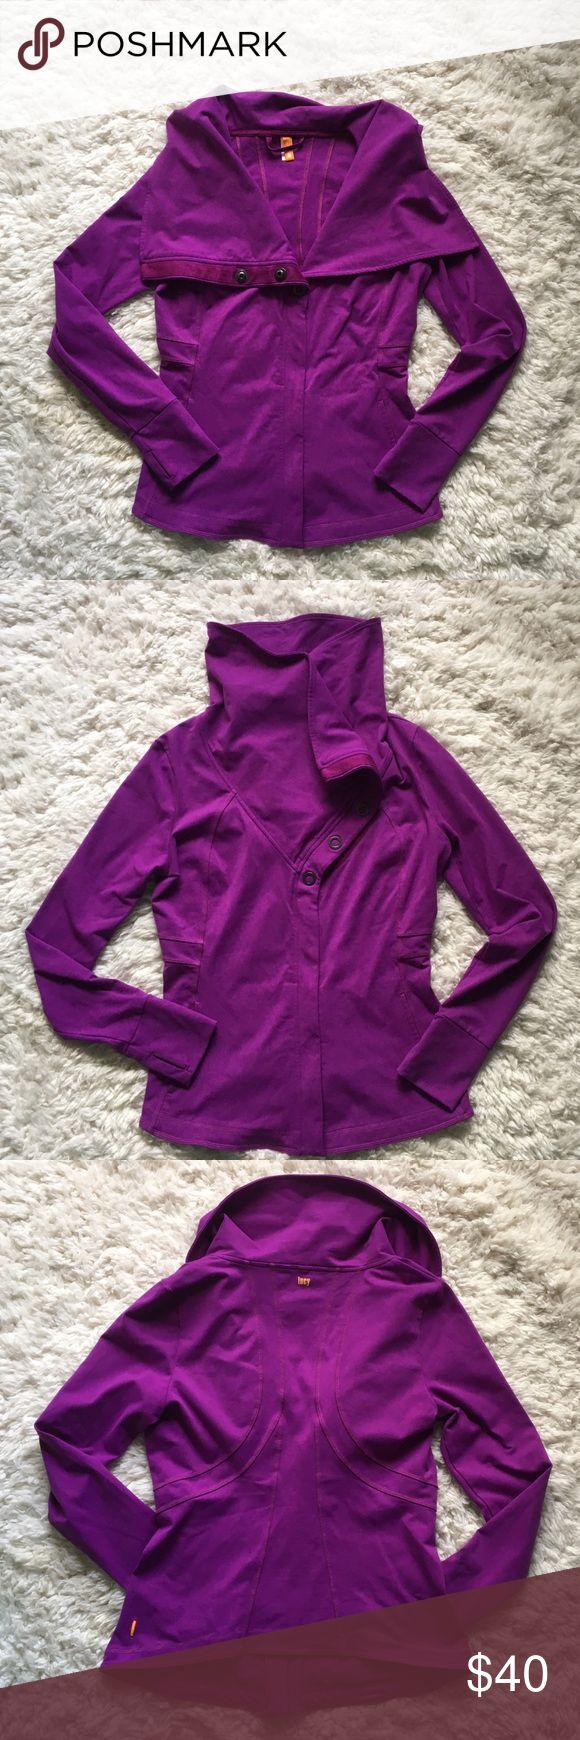 Lucy jacket Lucy athletic wear jacket. Size M. Color is bright purple. Slight pilling under arms as shown. Thumb holes. Neckline can be fold down or snapped up. Hardly worn. Lucy Jackets & Coats